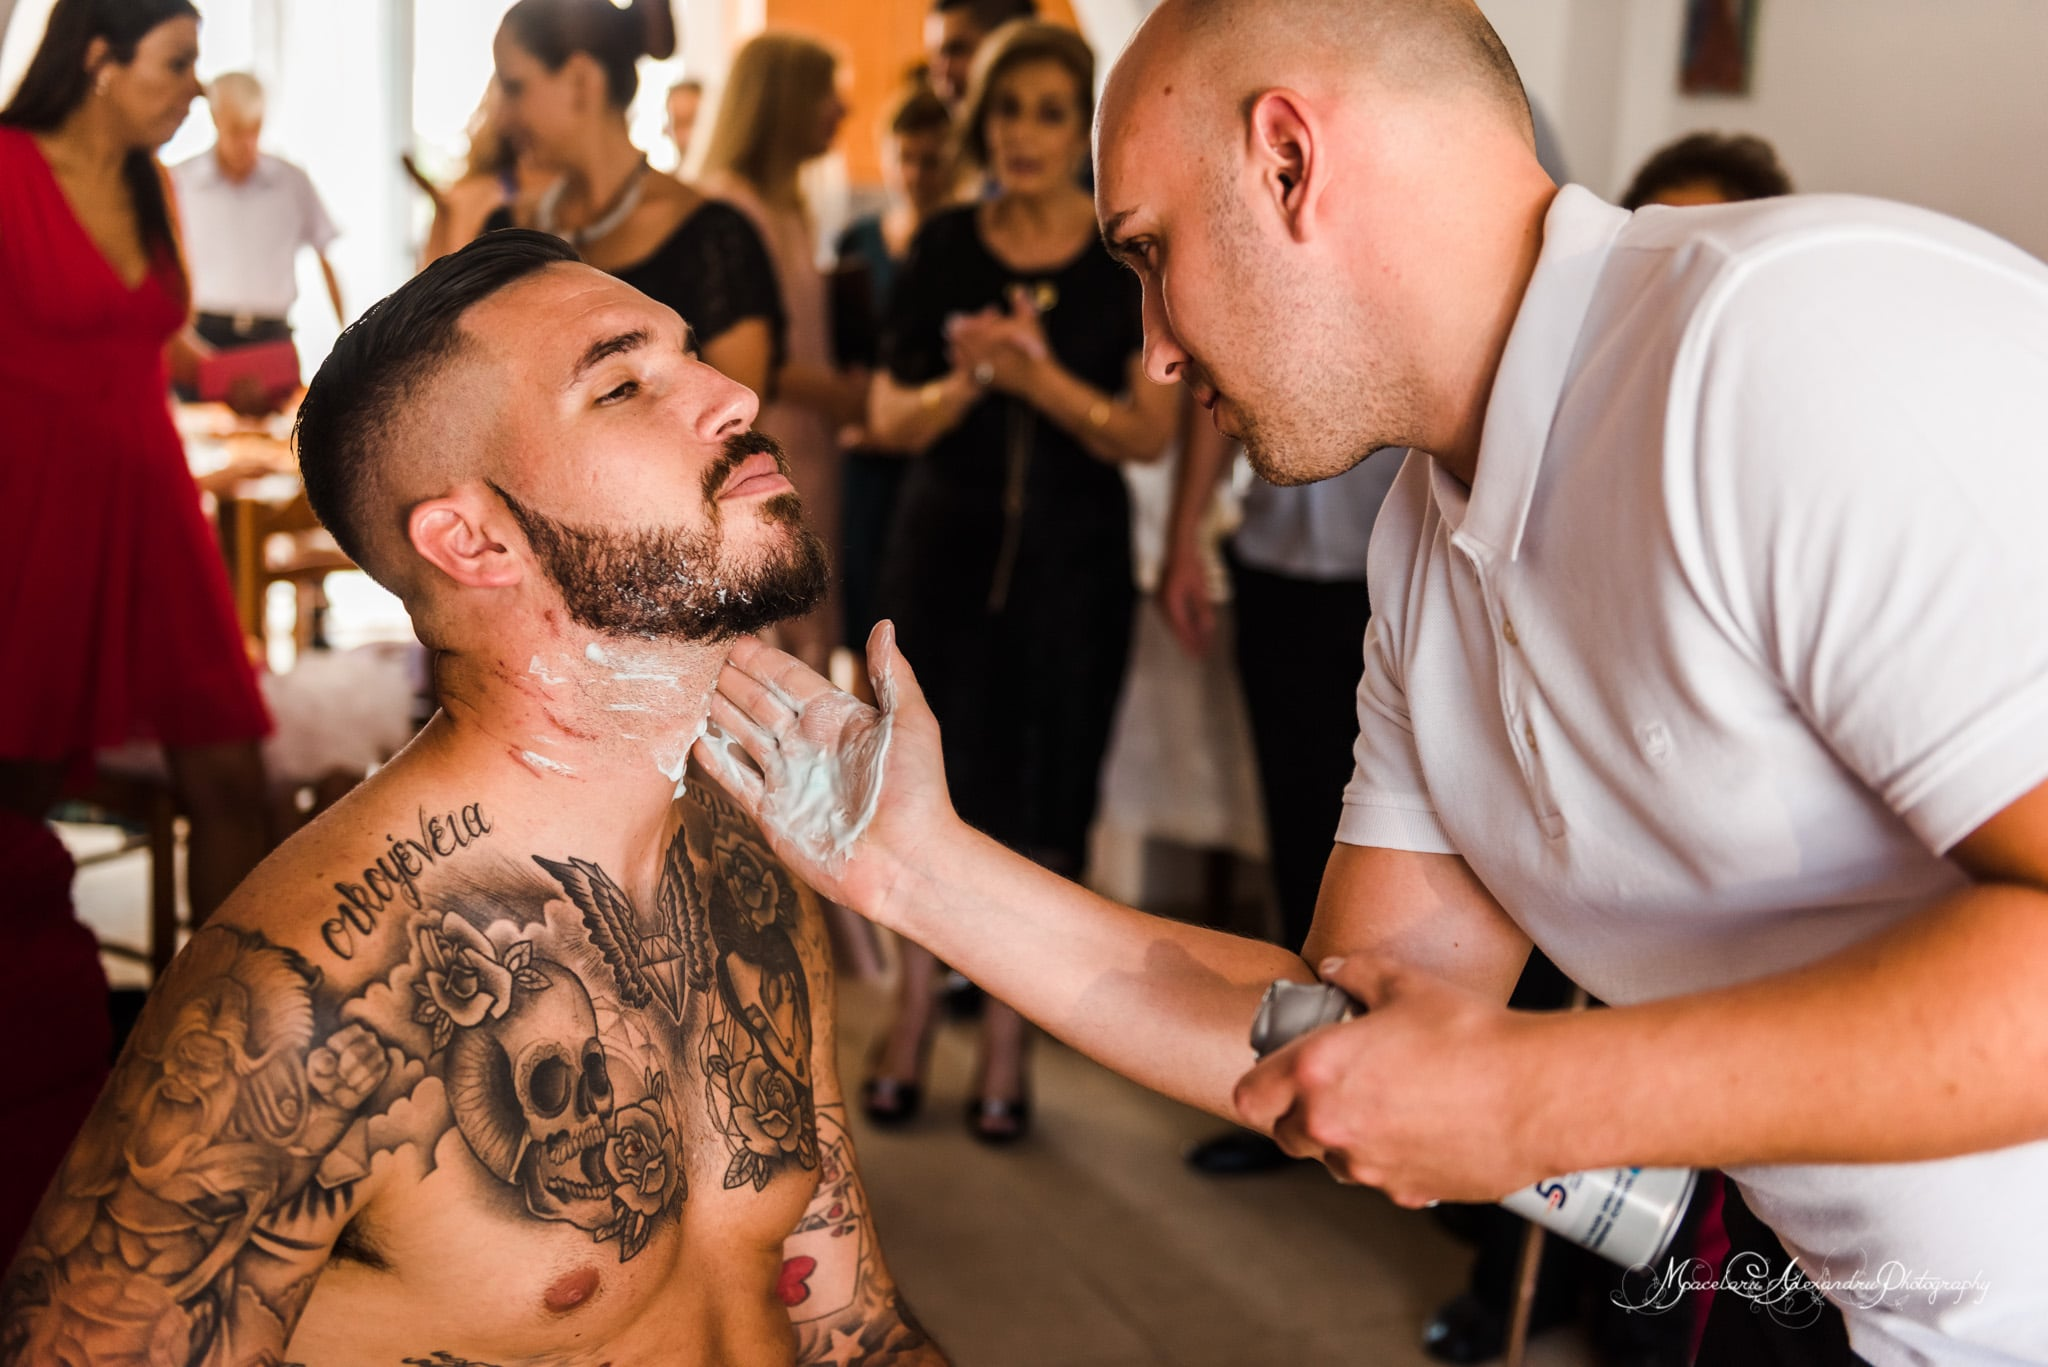 Wedding photography in Paphos - Groom getting ready